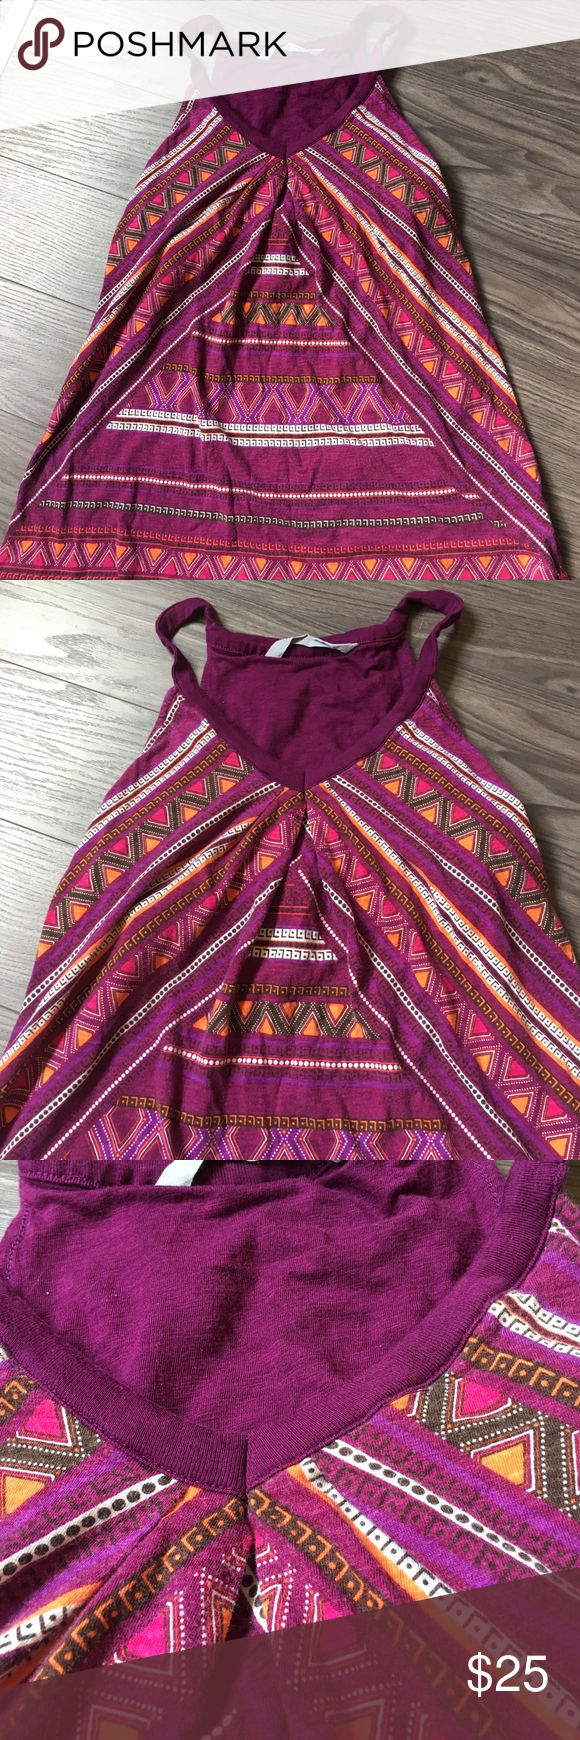 Althleta Tank Top with/ built in bra. Gorgeous Athleta tank with a pretty Aztec style pattern. Perfect for spring & summer! Size medium. Built in bra! Athleta Tops Tank Tops